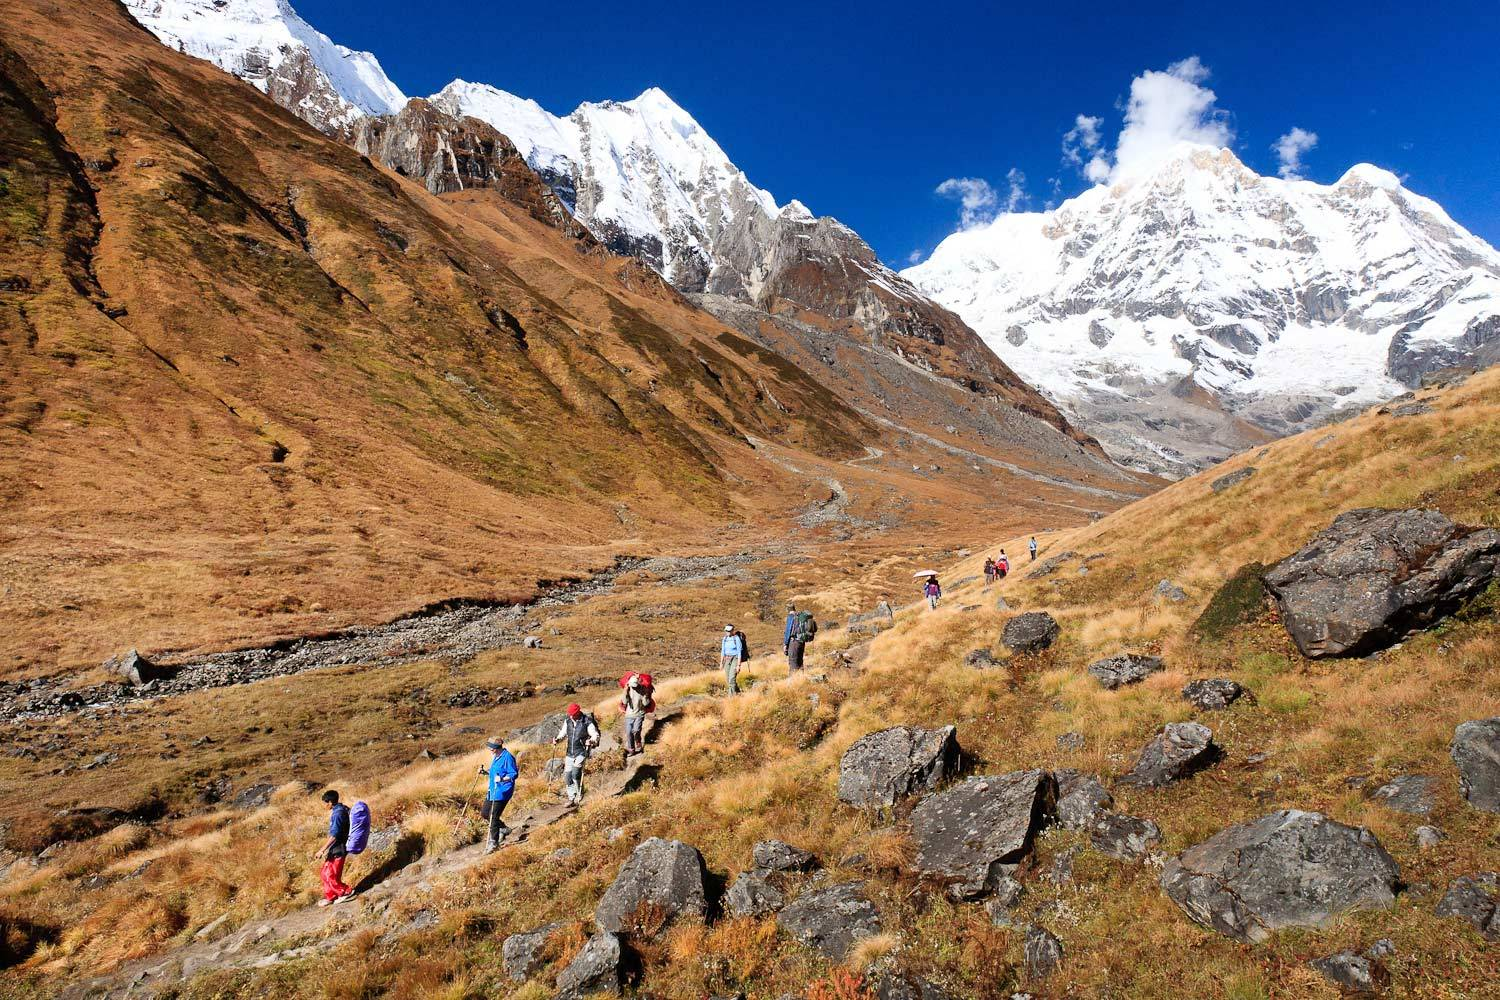 Annapurna Circuit Trek - Compare GAP Prices and Reviews